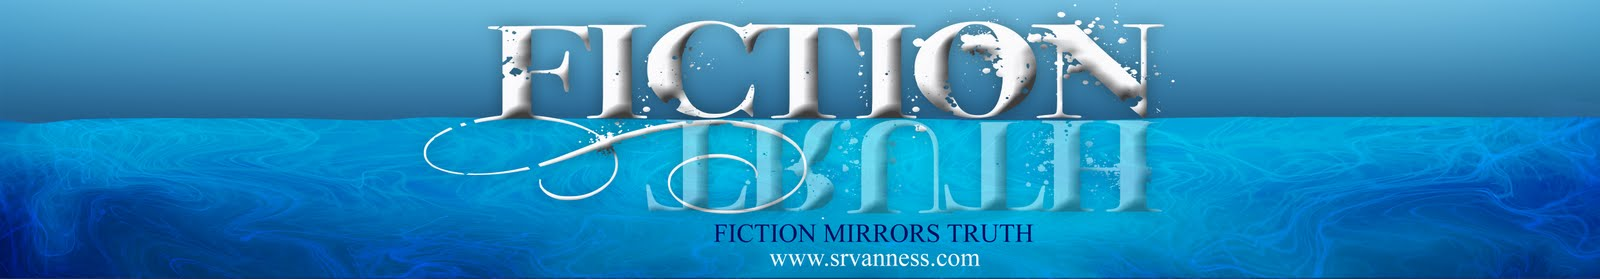 Fiction Mirrors Truth